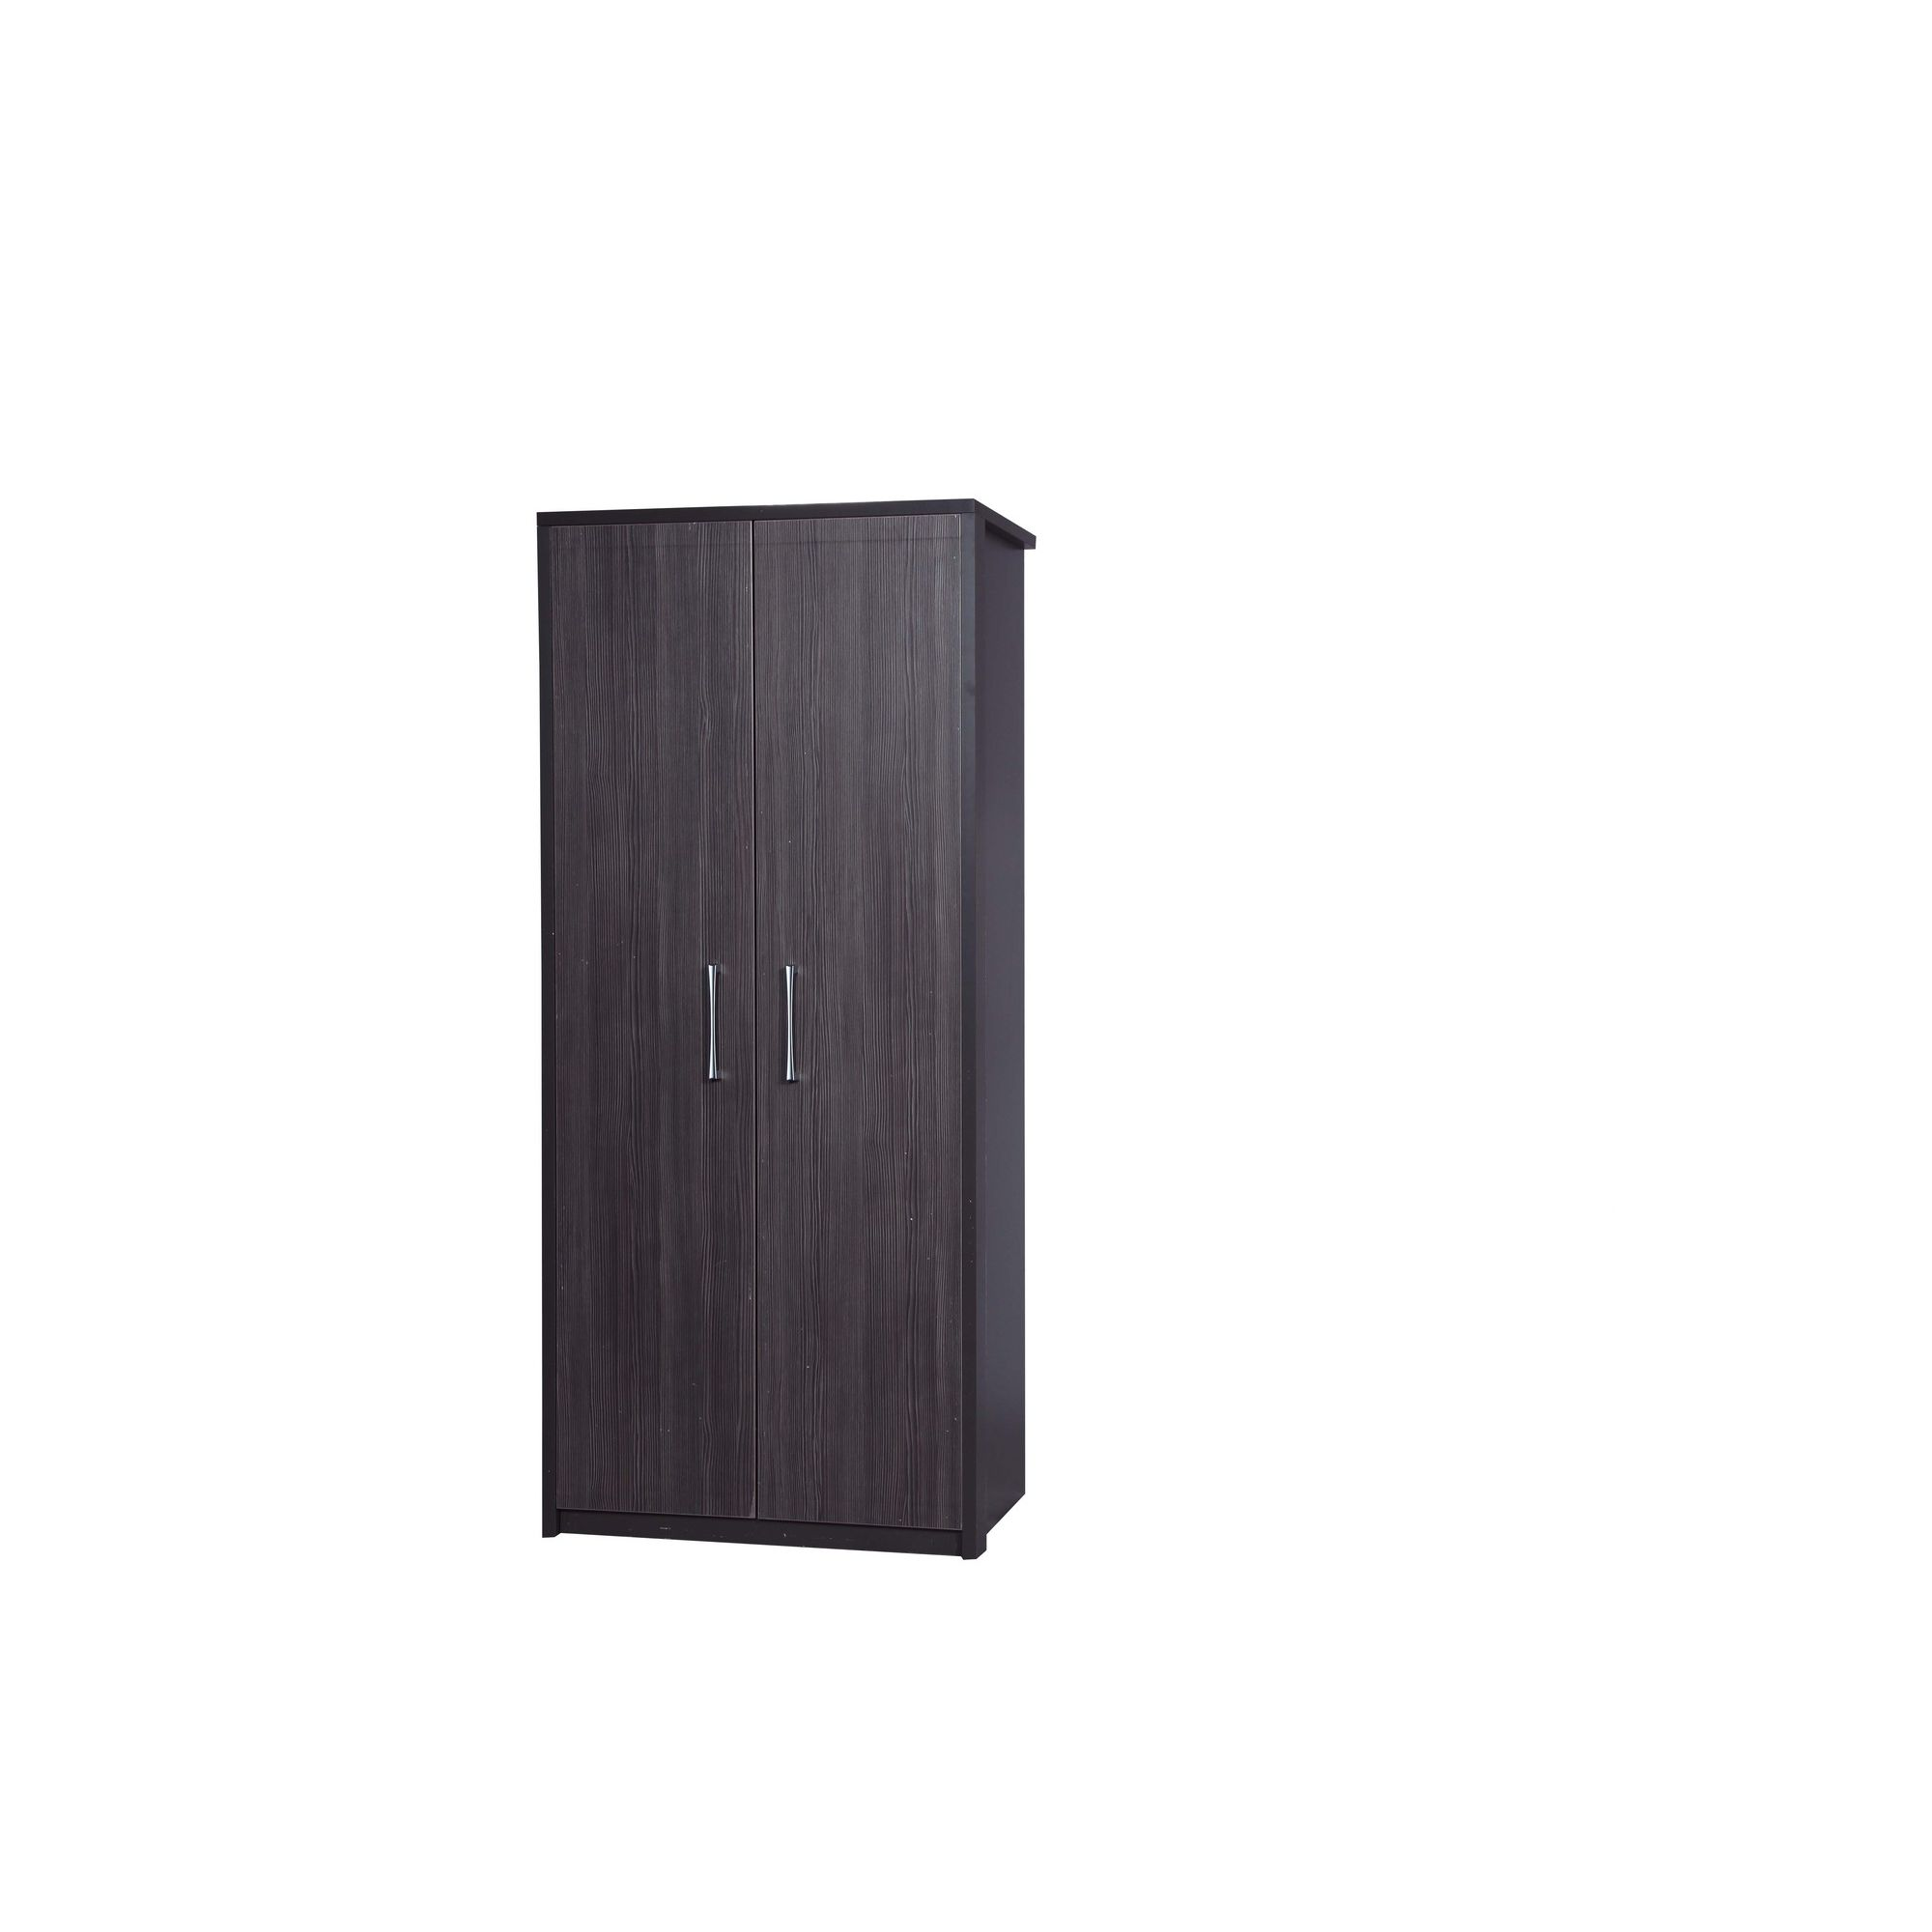 Alto Furniture Avola Double Wardrobe - Grey Carcass With Grey Avola at Tesco Direct